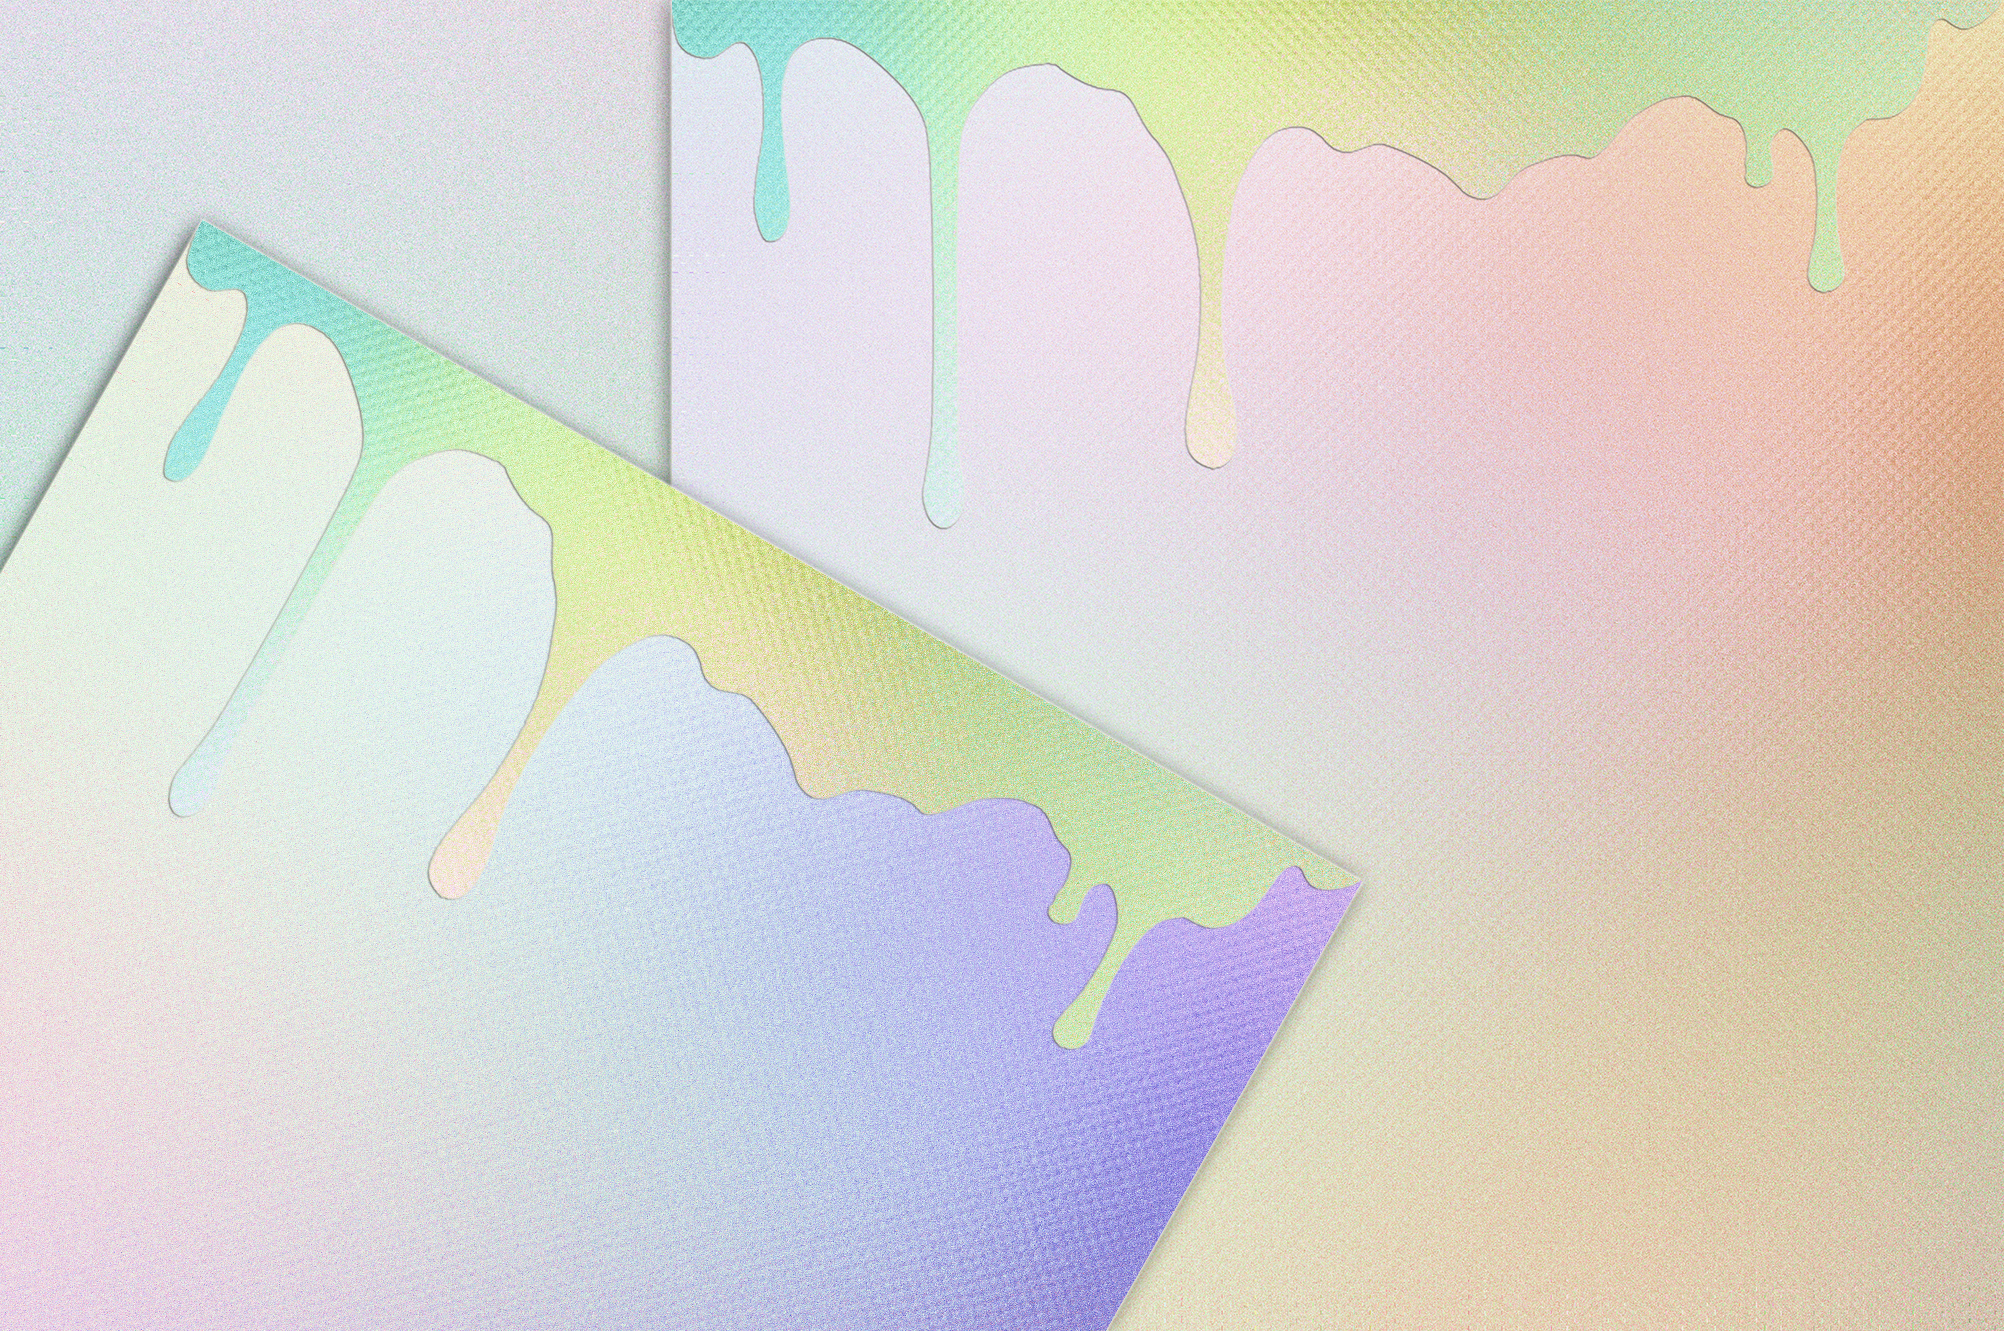 Dripping Iridescent Textures example image 2